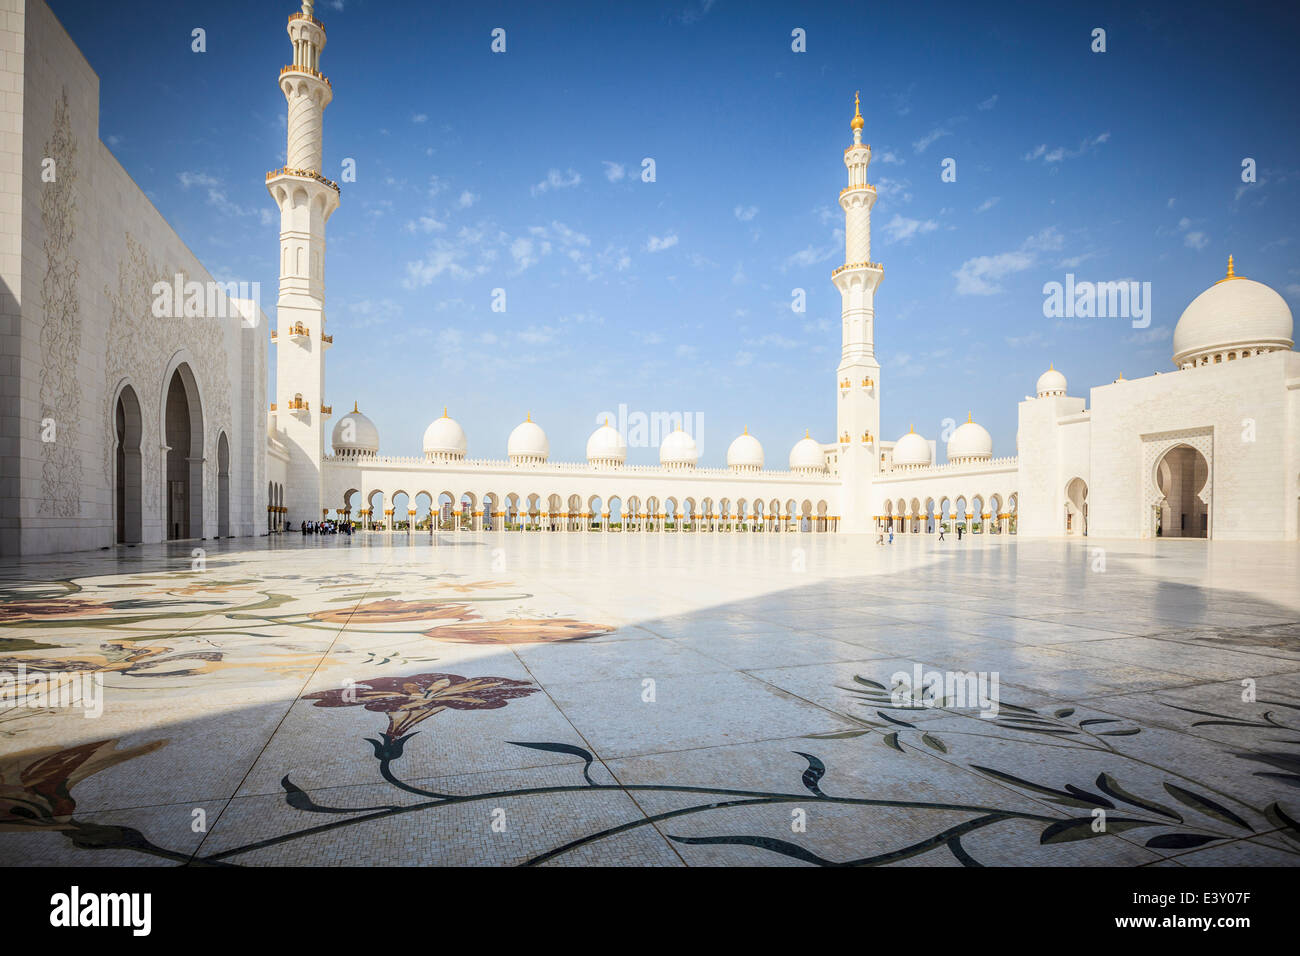 Ornate arches of Sheikh Zayed Grand Mosque, Abu Dhabi, United Arab Emirates Stock Photo